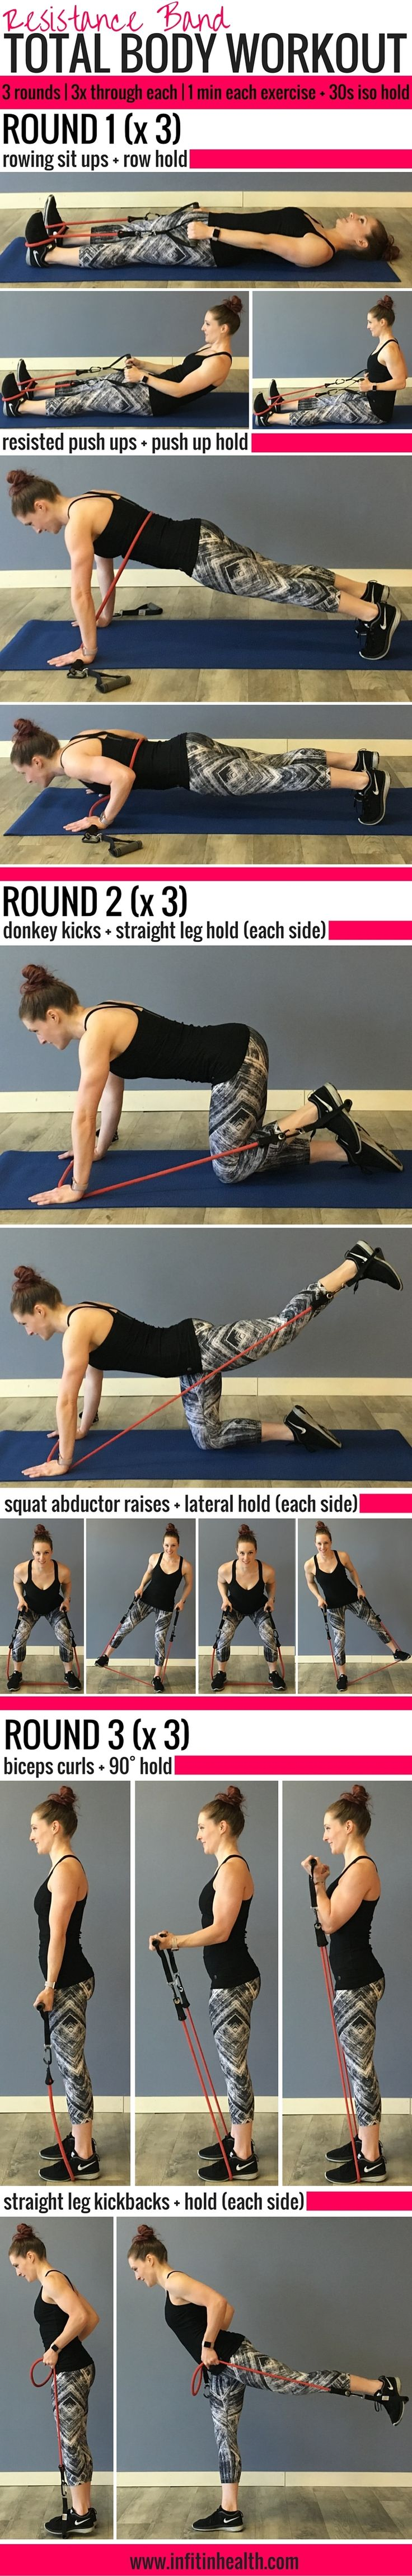 Target your whole body with just a band!  The isometric holds are great! Resistance Band Total Body Workout w/ Isometric Holds